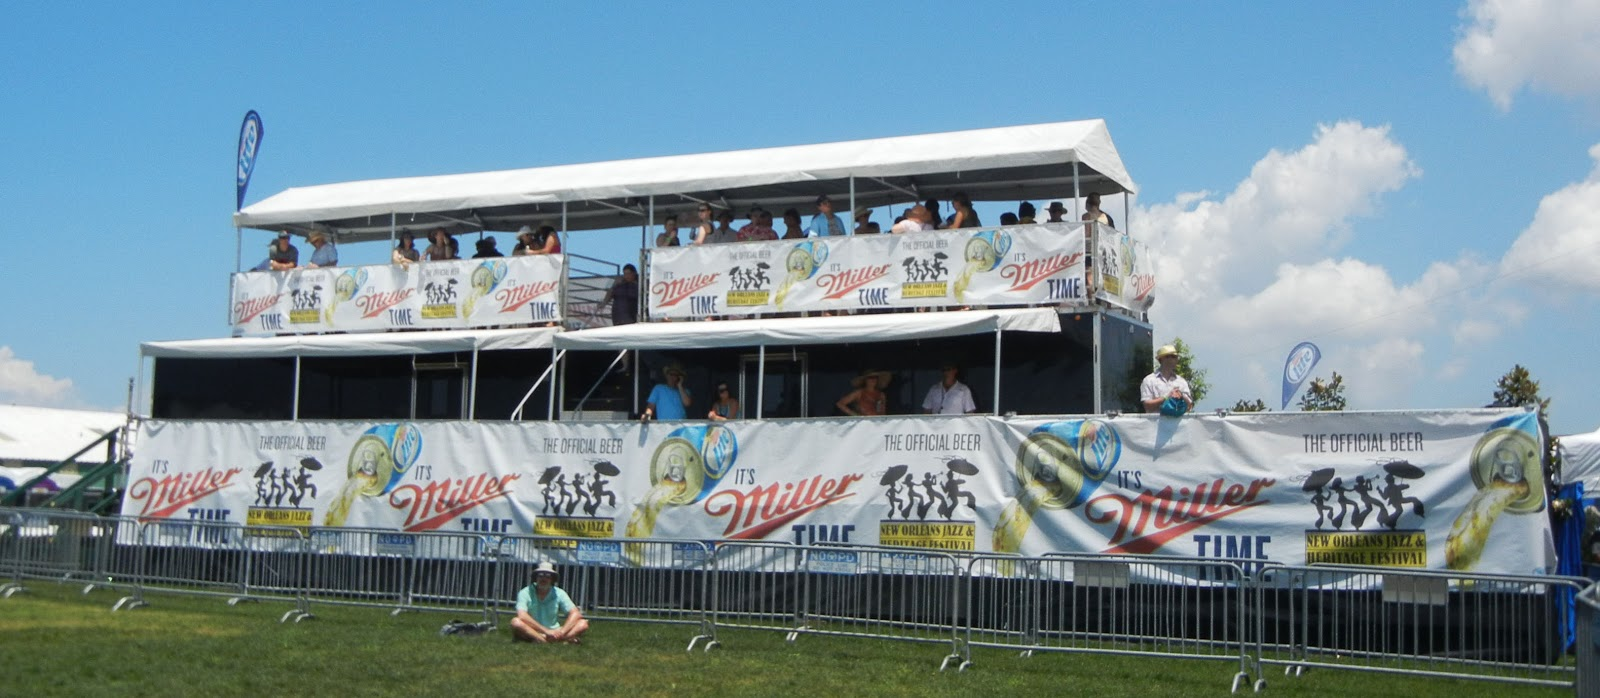 Miller Lite Tent. Paparazzi Cantmisshwp Your Good Times & Miller Light Tent u0026